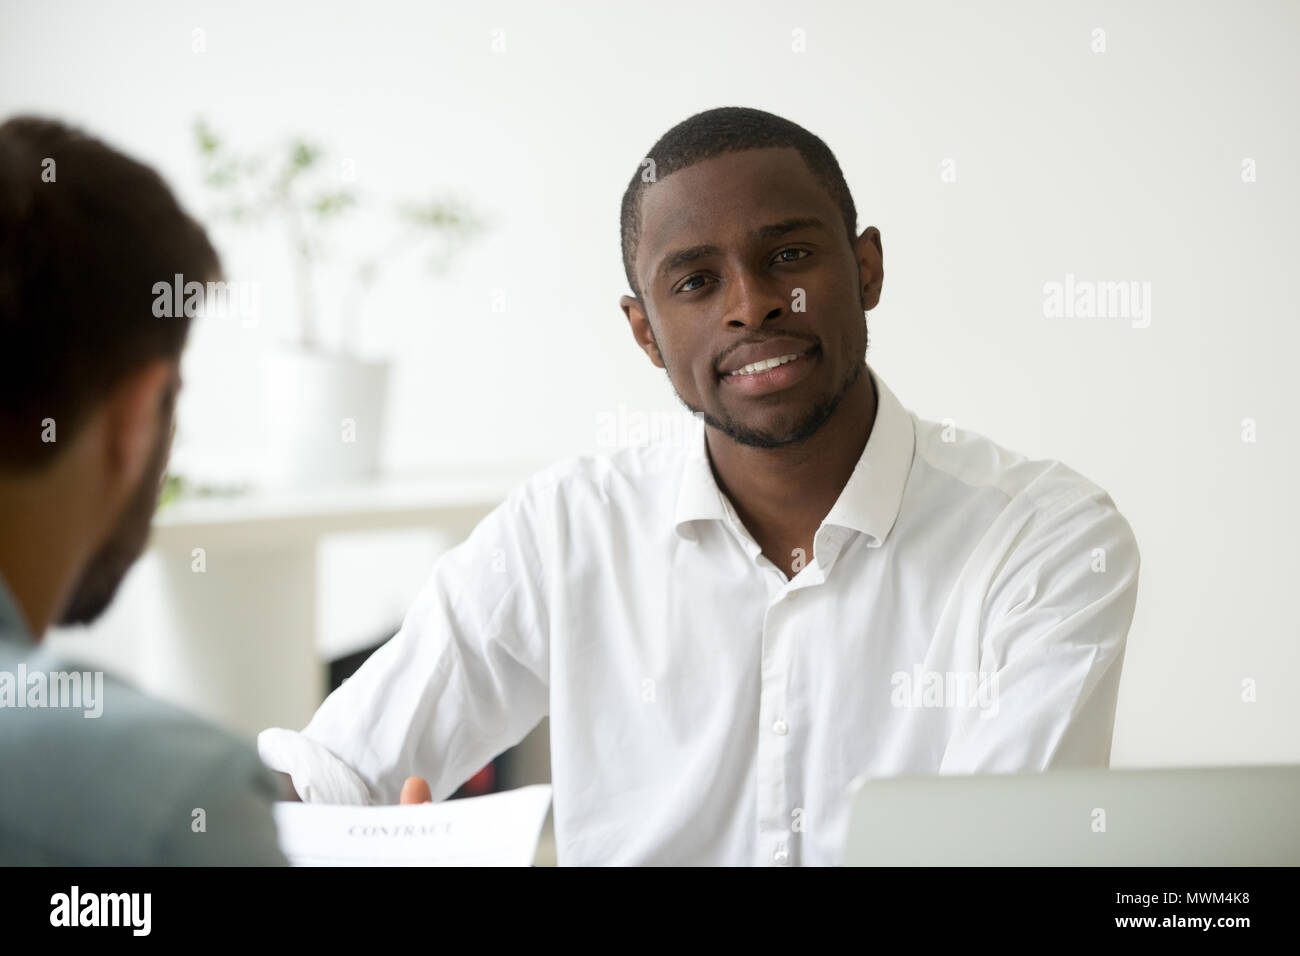 Smiling African American worker looking at camera in office - Stock Image